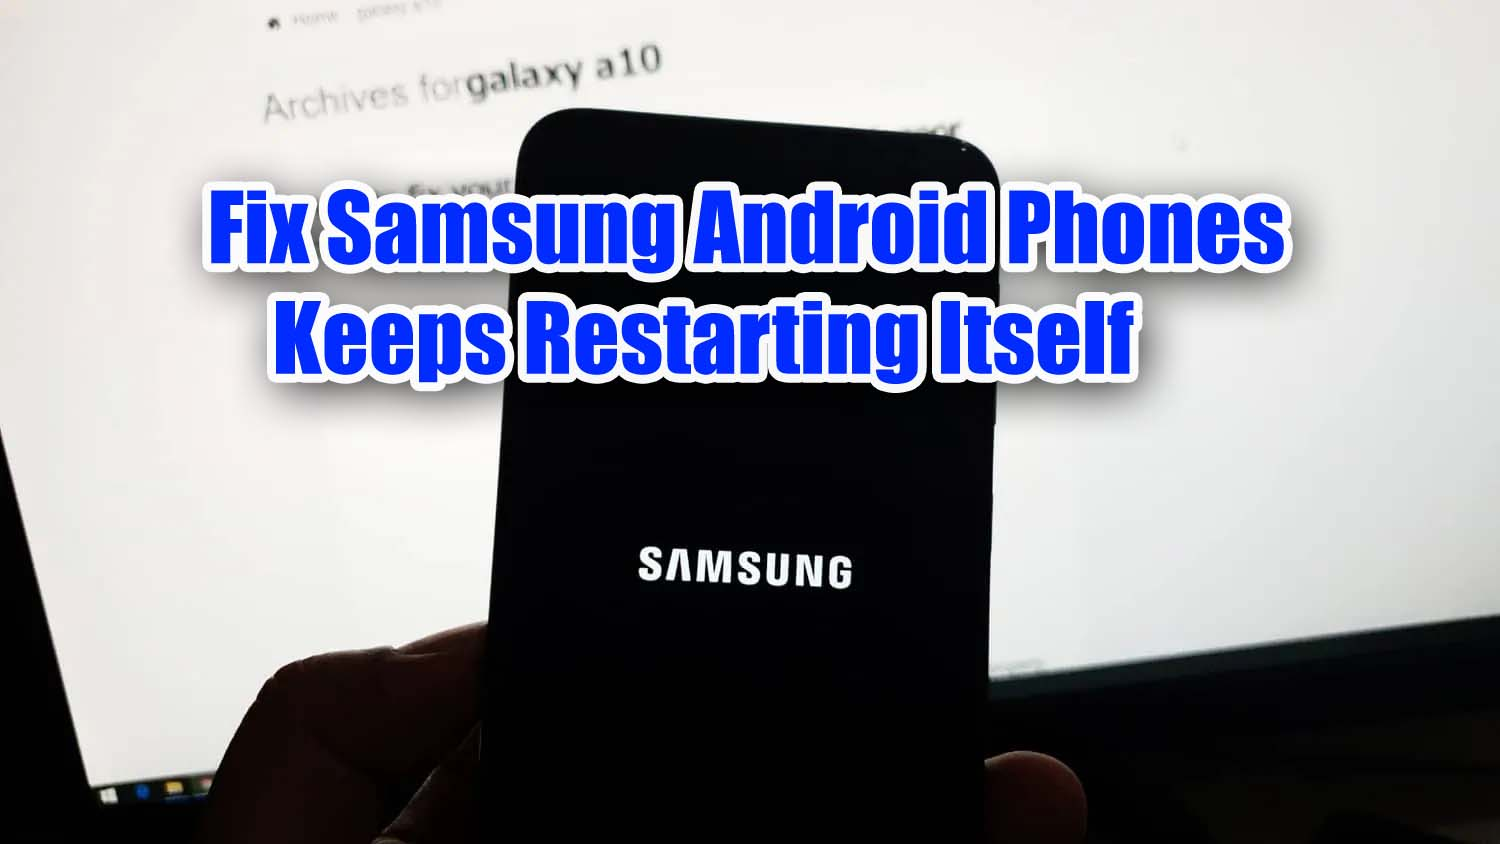 Fix Samsung Android Phones Keeps Restarting Itself